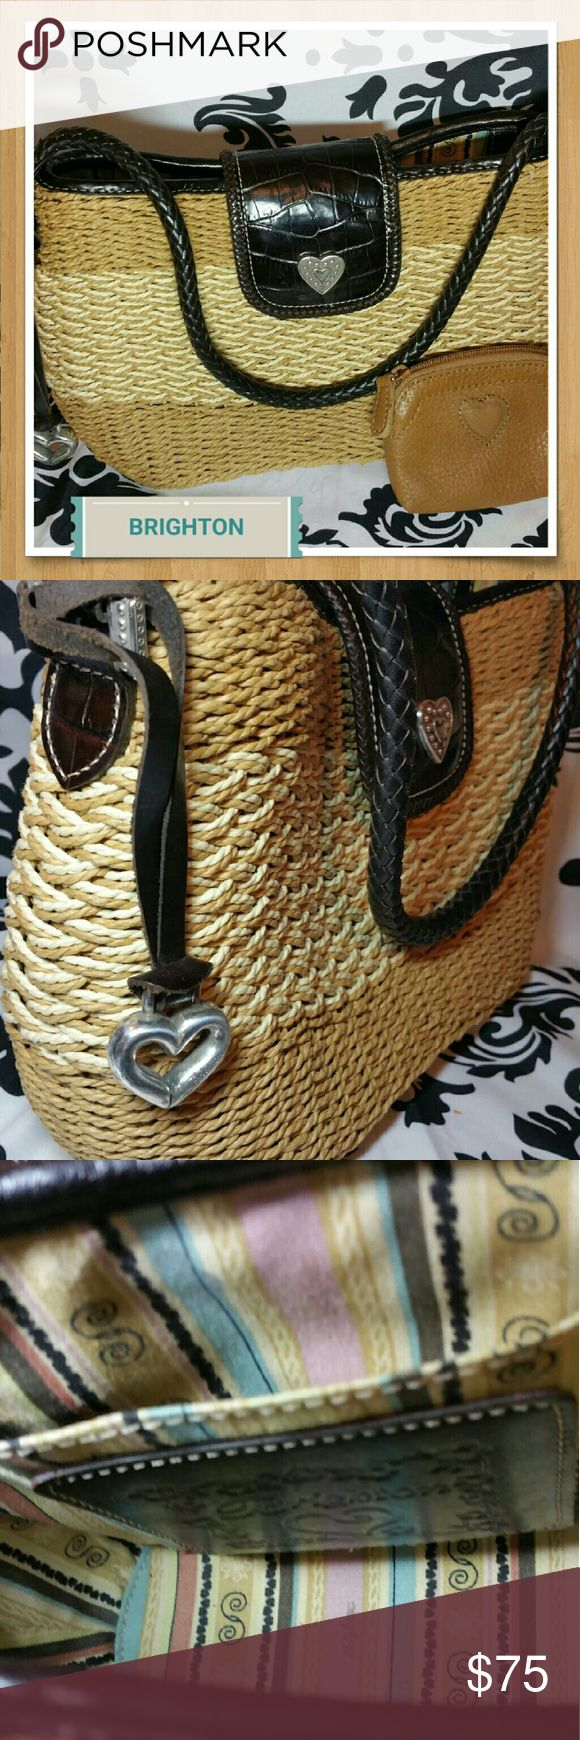 NEW Authentic Brighton Purse with Bonus coin purse Free coin purse included with the purchase of this listing. Both are In like new condition. Brighton Bags Shoulder Bags